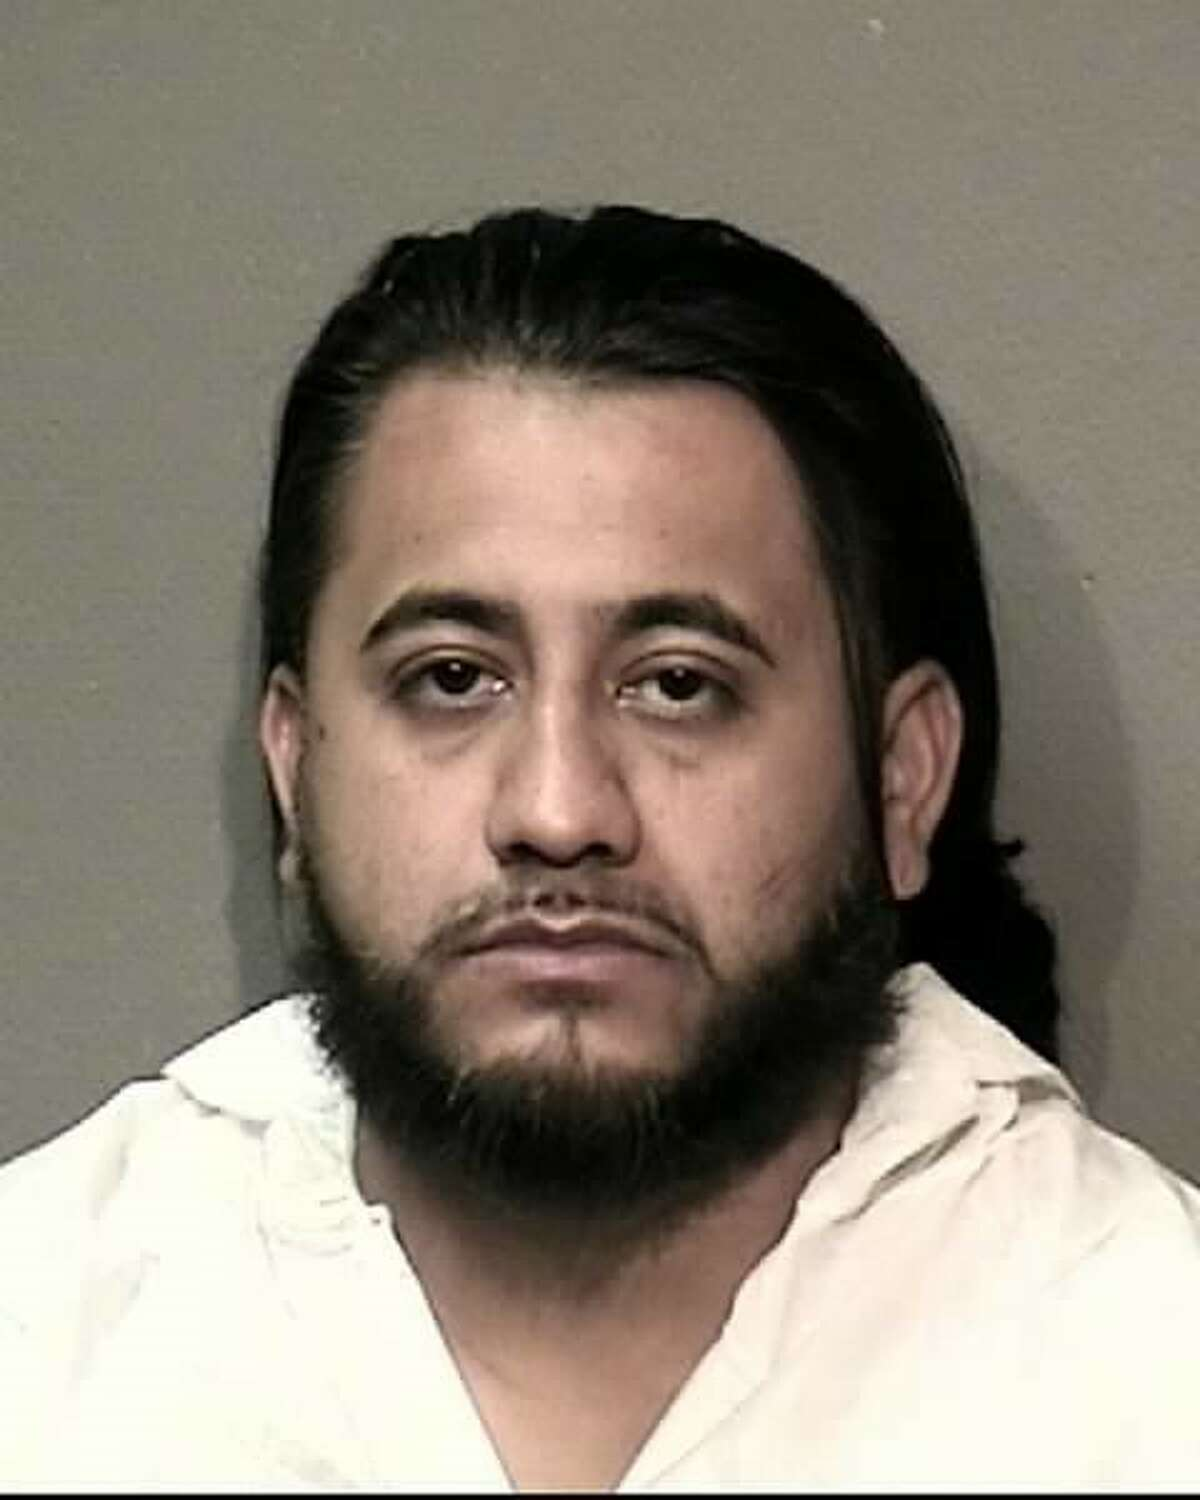 Ismael Gonzalez, 32, is charged with aggravated assault against a public servant and felony evading arrest after a police chase about 1:30 a.m. Thursday, Oct. 13, 2016 that ended in the 4000 block of Redbud in south Houston. (Houston Police Department)